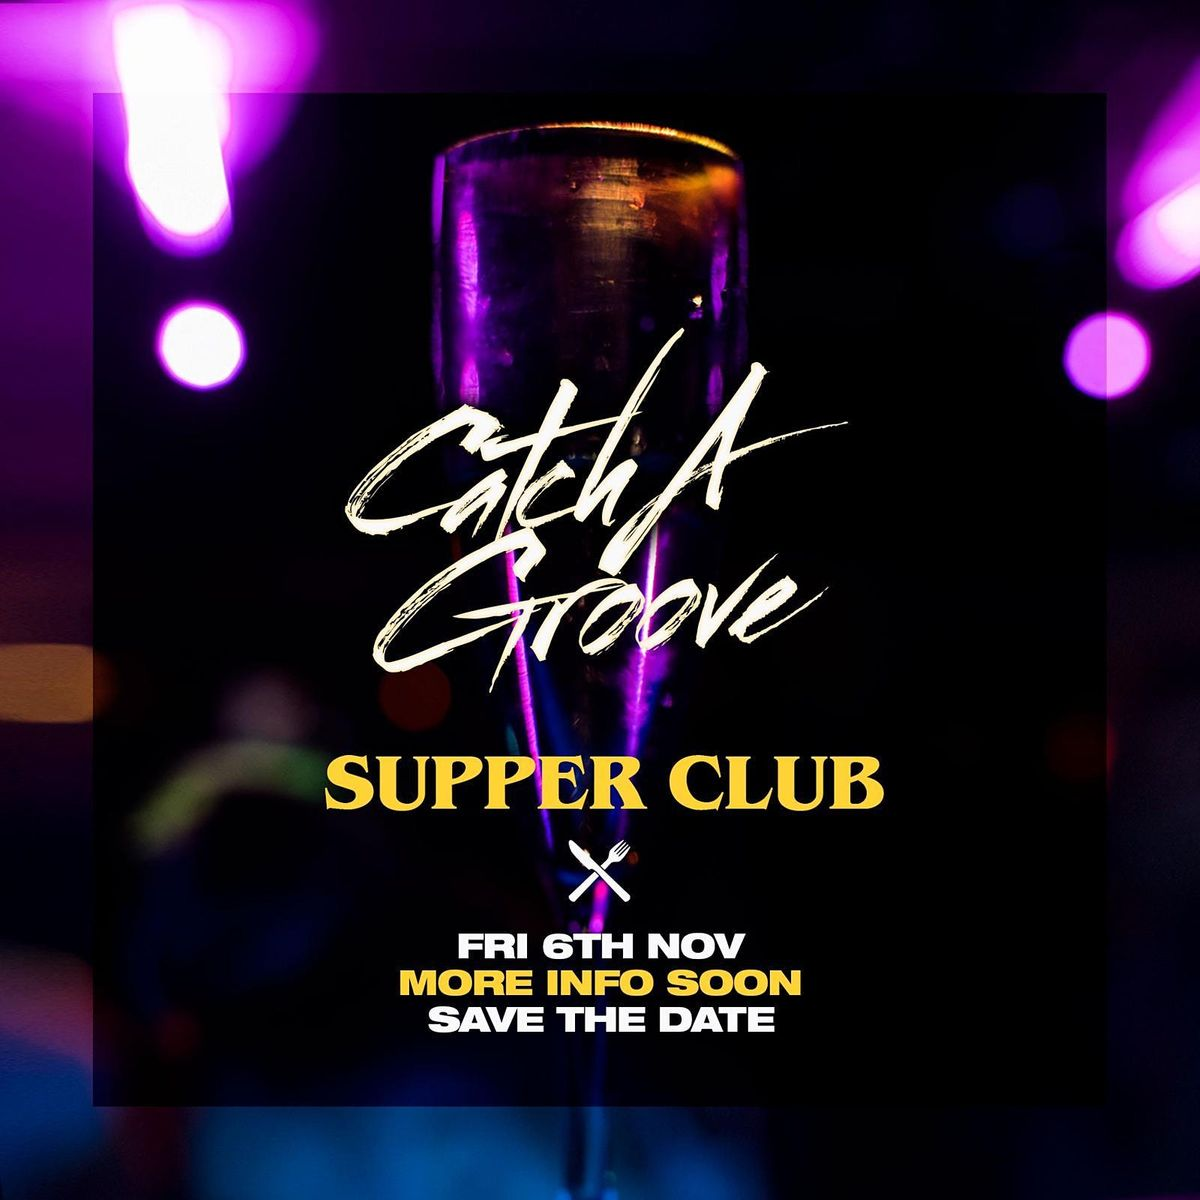 Catch a Groove with Matt White Supper Club | Event in London | AllEvents.in